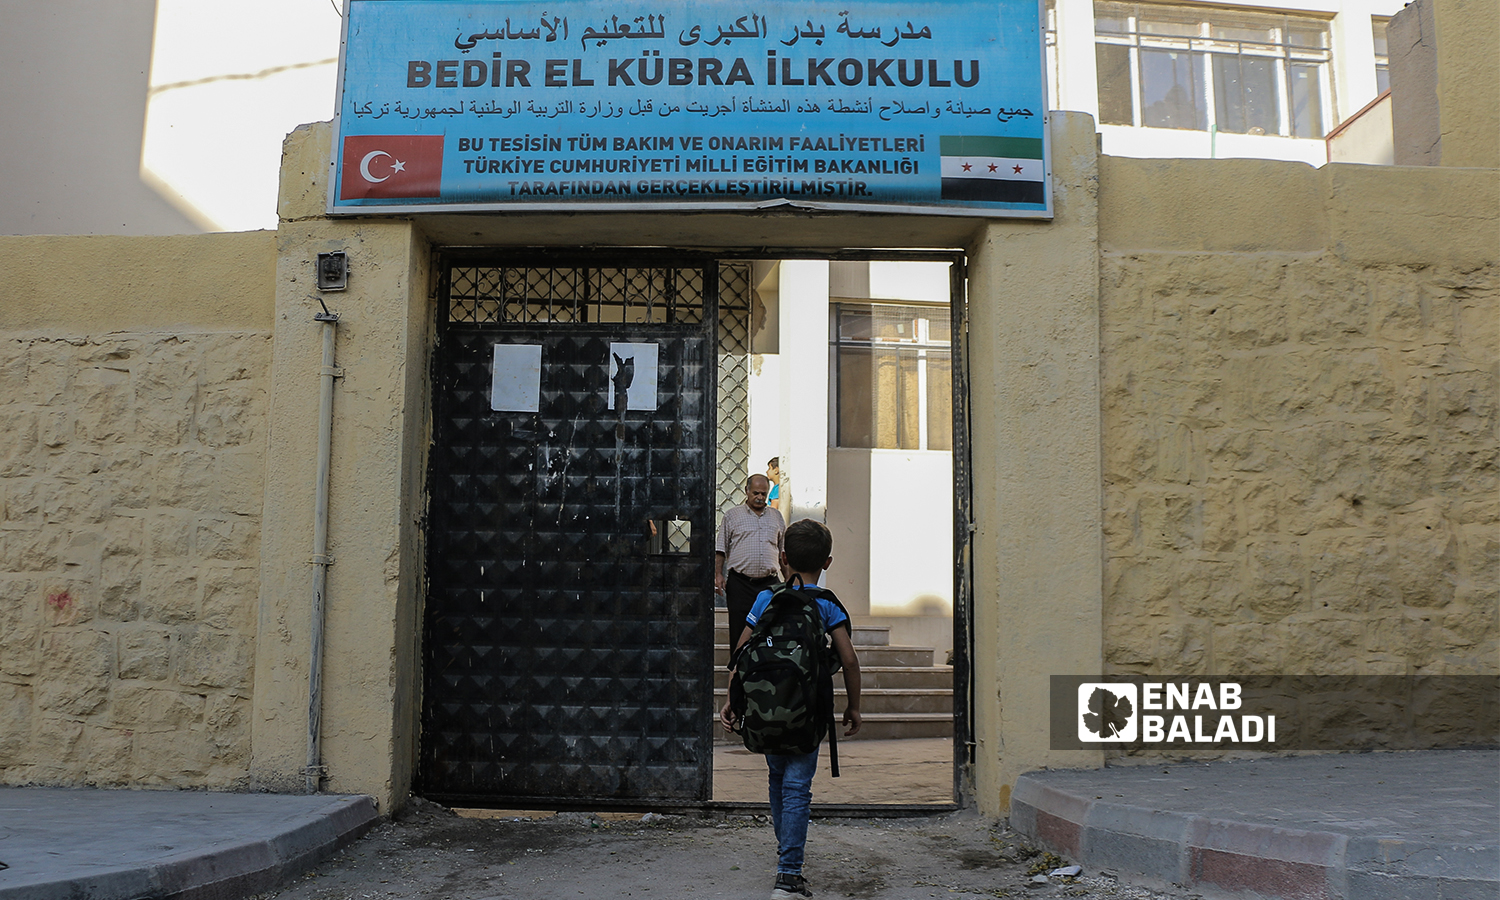 A primary school student entering the main gate of his school in the northern countryside of Aleppo - Azaz city - 22 September 2021 (Enab Baladi / Walid Othman)